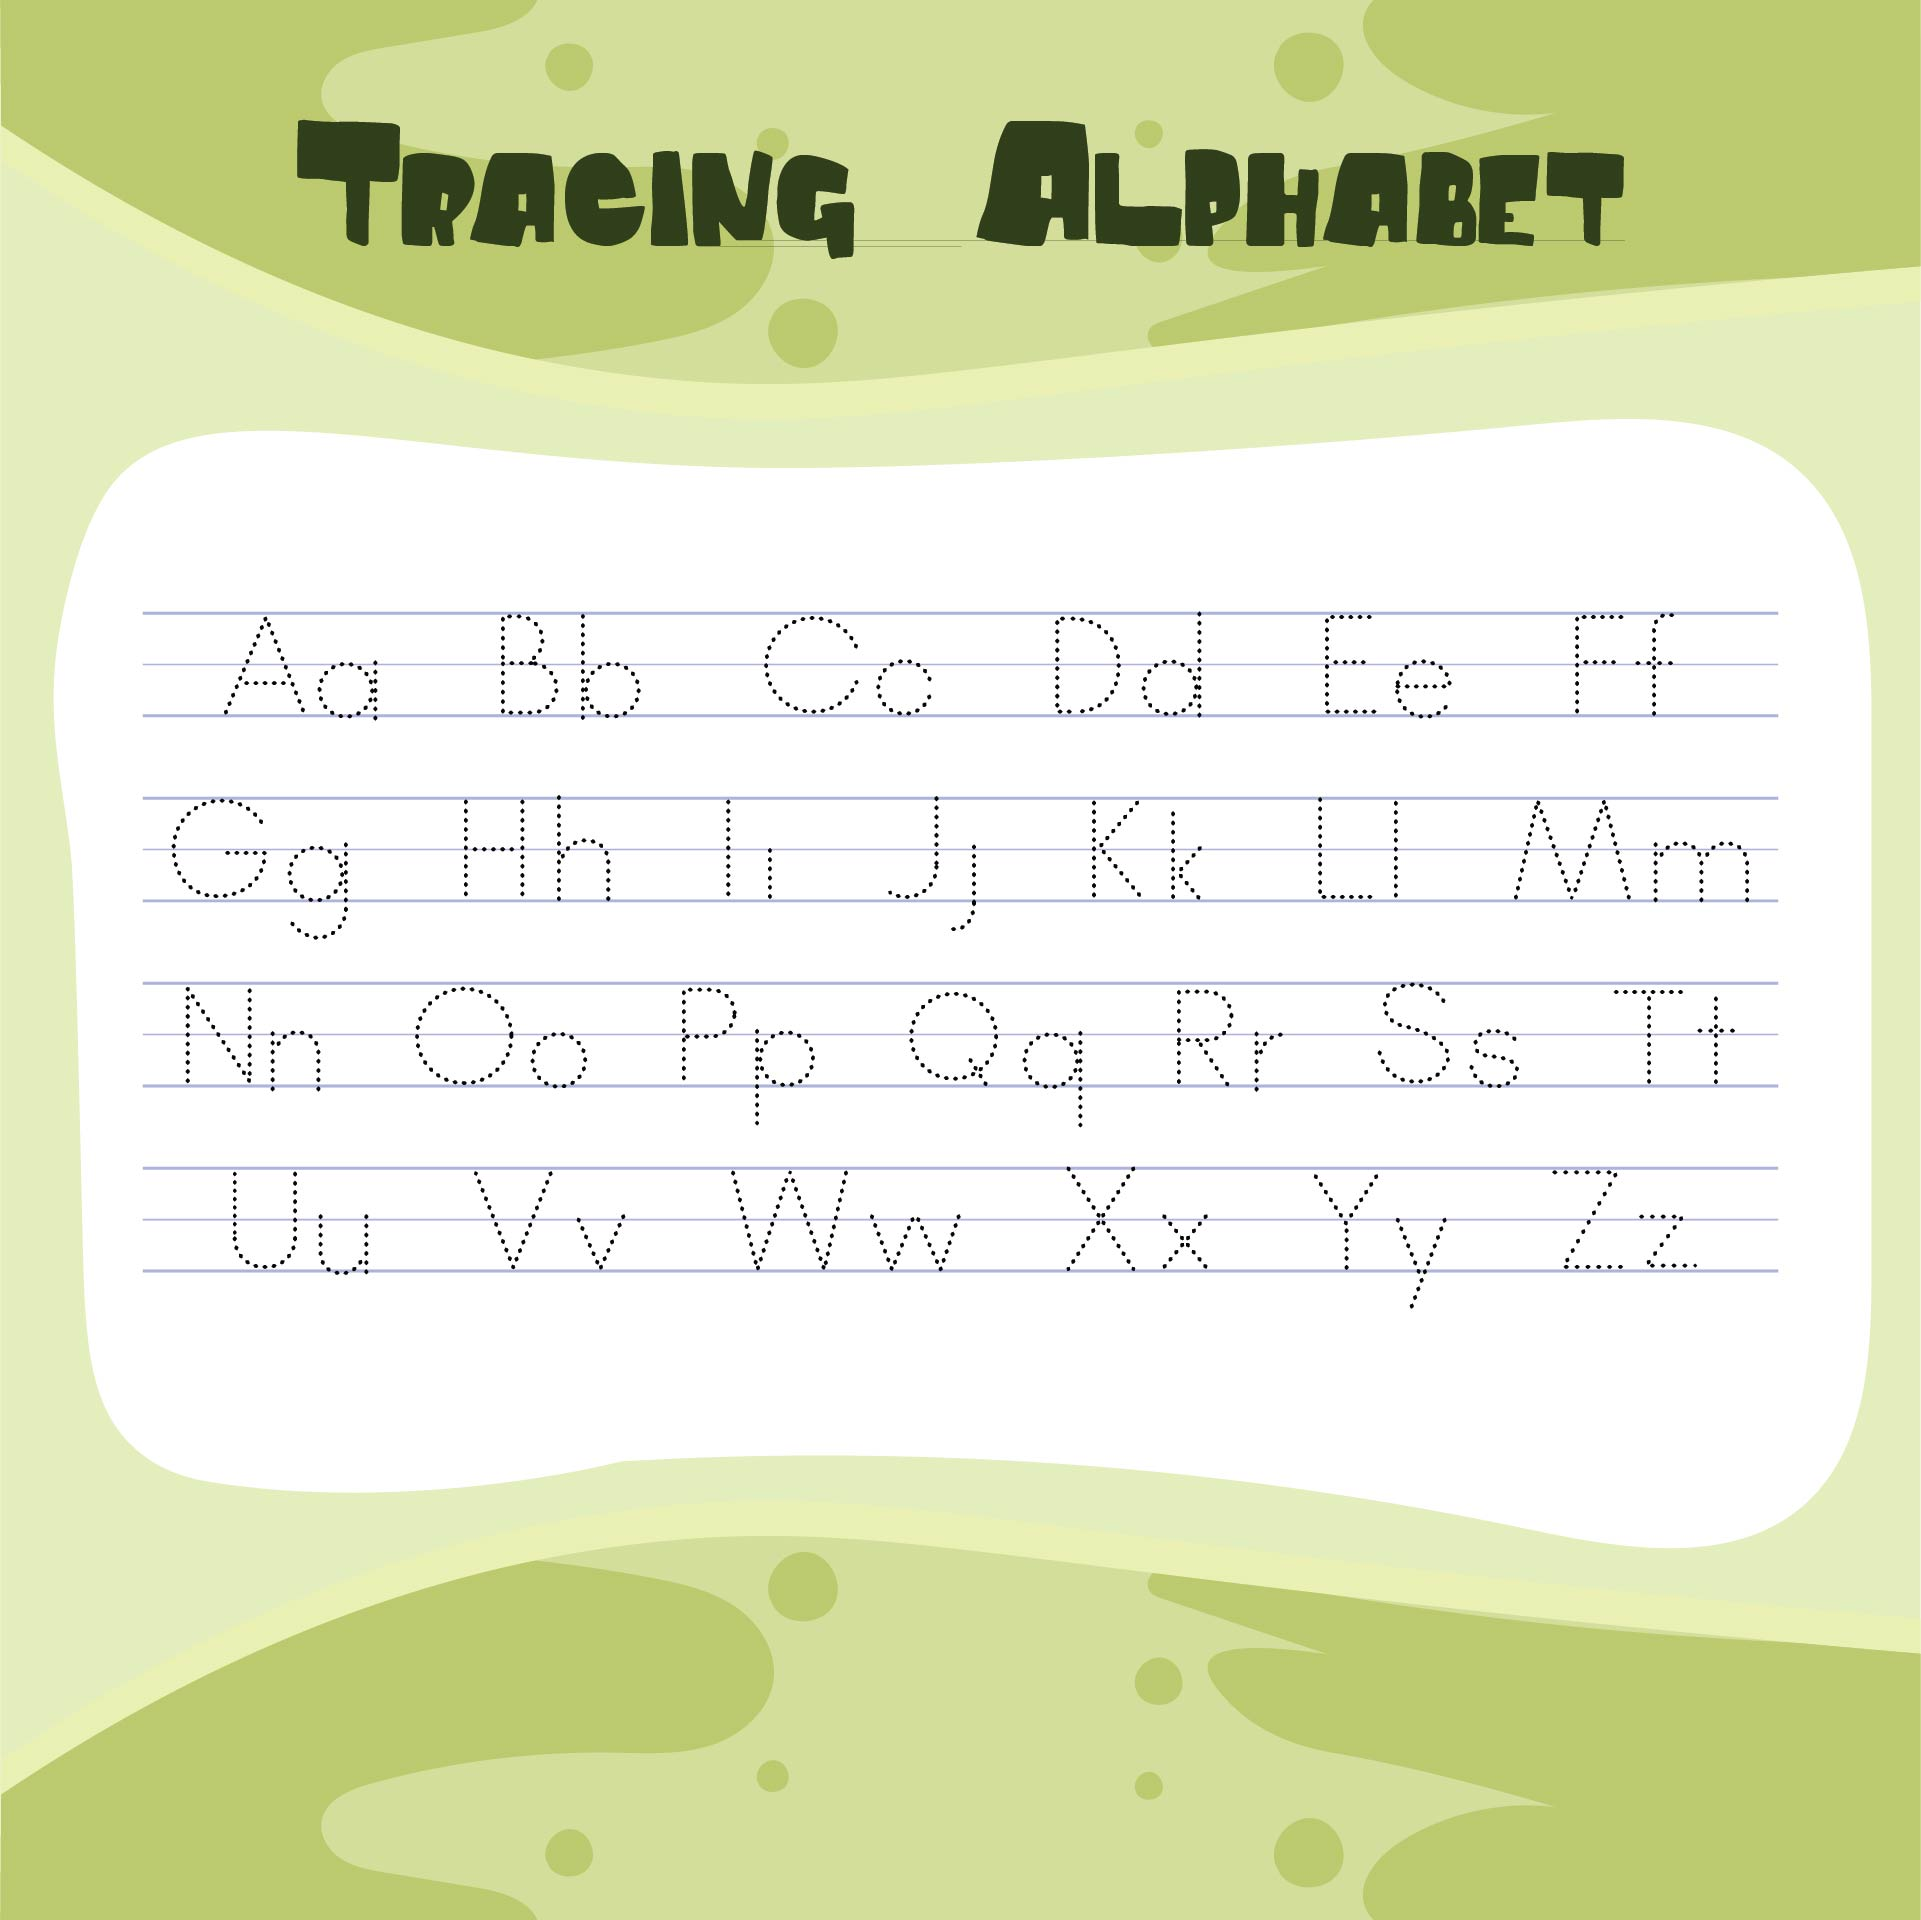 hight resolution of 6 Best Free ABC Worksheets Preschool Printables - printablee.com